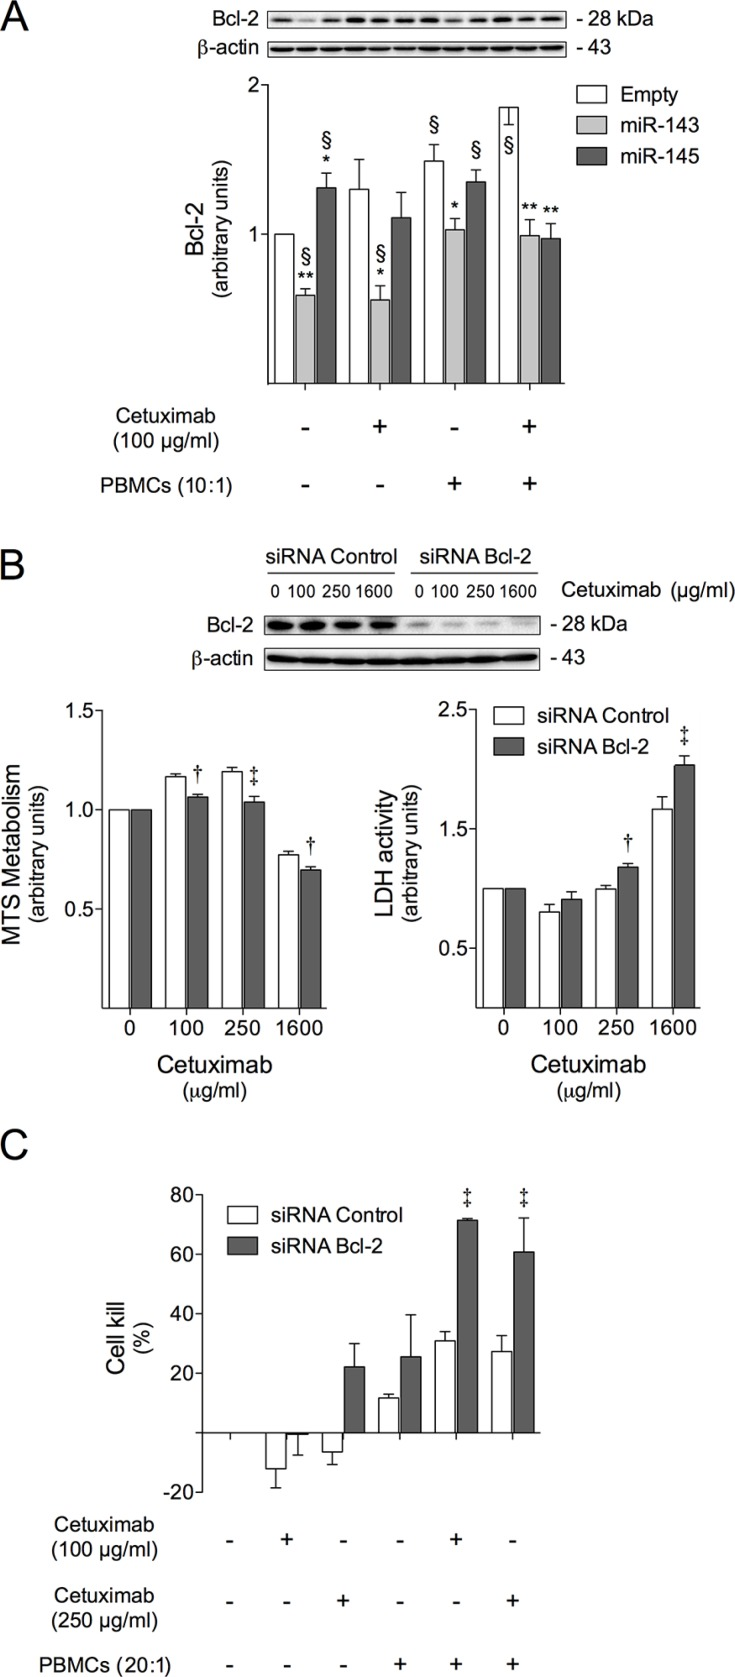 Bcl-2 is involved in cetuximab sensitization induced by miR-143 or miR-145 overexpression, increasing cell susceptibility to cetuximab-mediated ADCC ( A ) HCT116-Empty, HCT116-miR-143 and HCT116-miR-145 cells were exposed to 100 μg/ml cetuximab or PBMCs (10:1) alone, or co-treatment of cetuximab together with PBMCs (10:1), or vehicle (control) for 48 h to evaluate Bcl-2 protein expression, by immunoblot. HCT116 cells were transfected with Bcl-2 siRNA or siRNA control, and next treated with cetuximab for 72 h, and used for: ( B ) Bcl-2 protein expression evaluation by immunoblot (upper panel), and evaluation of cell viability and general cell death, respectively by MTS and LDH assay (lower panel); ( C ) cetuximab-mediated ADCC evaluation, where siRNA transfected cells were exposed to cetuximab and/or PBMCs (20:1) and the growth inhibitory effects were assayed using the xCELLigence system as described above. Quantification of growth inhibitory effects are presented as the percentage of cell kill for 100 μg/ml or 250 μg/ml cetuximab treatment, after 72 h of exposure. Representative blots from at least three independent experiments are shown. Results are expressed as (A) mean ± SEM fold-change to untreated control cells, (B) the mean ± SEM fold change to respective untreated cells, or (C) mean ± SEM, from at least three independent experiments. ** p